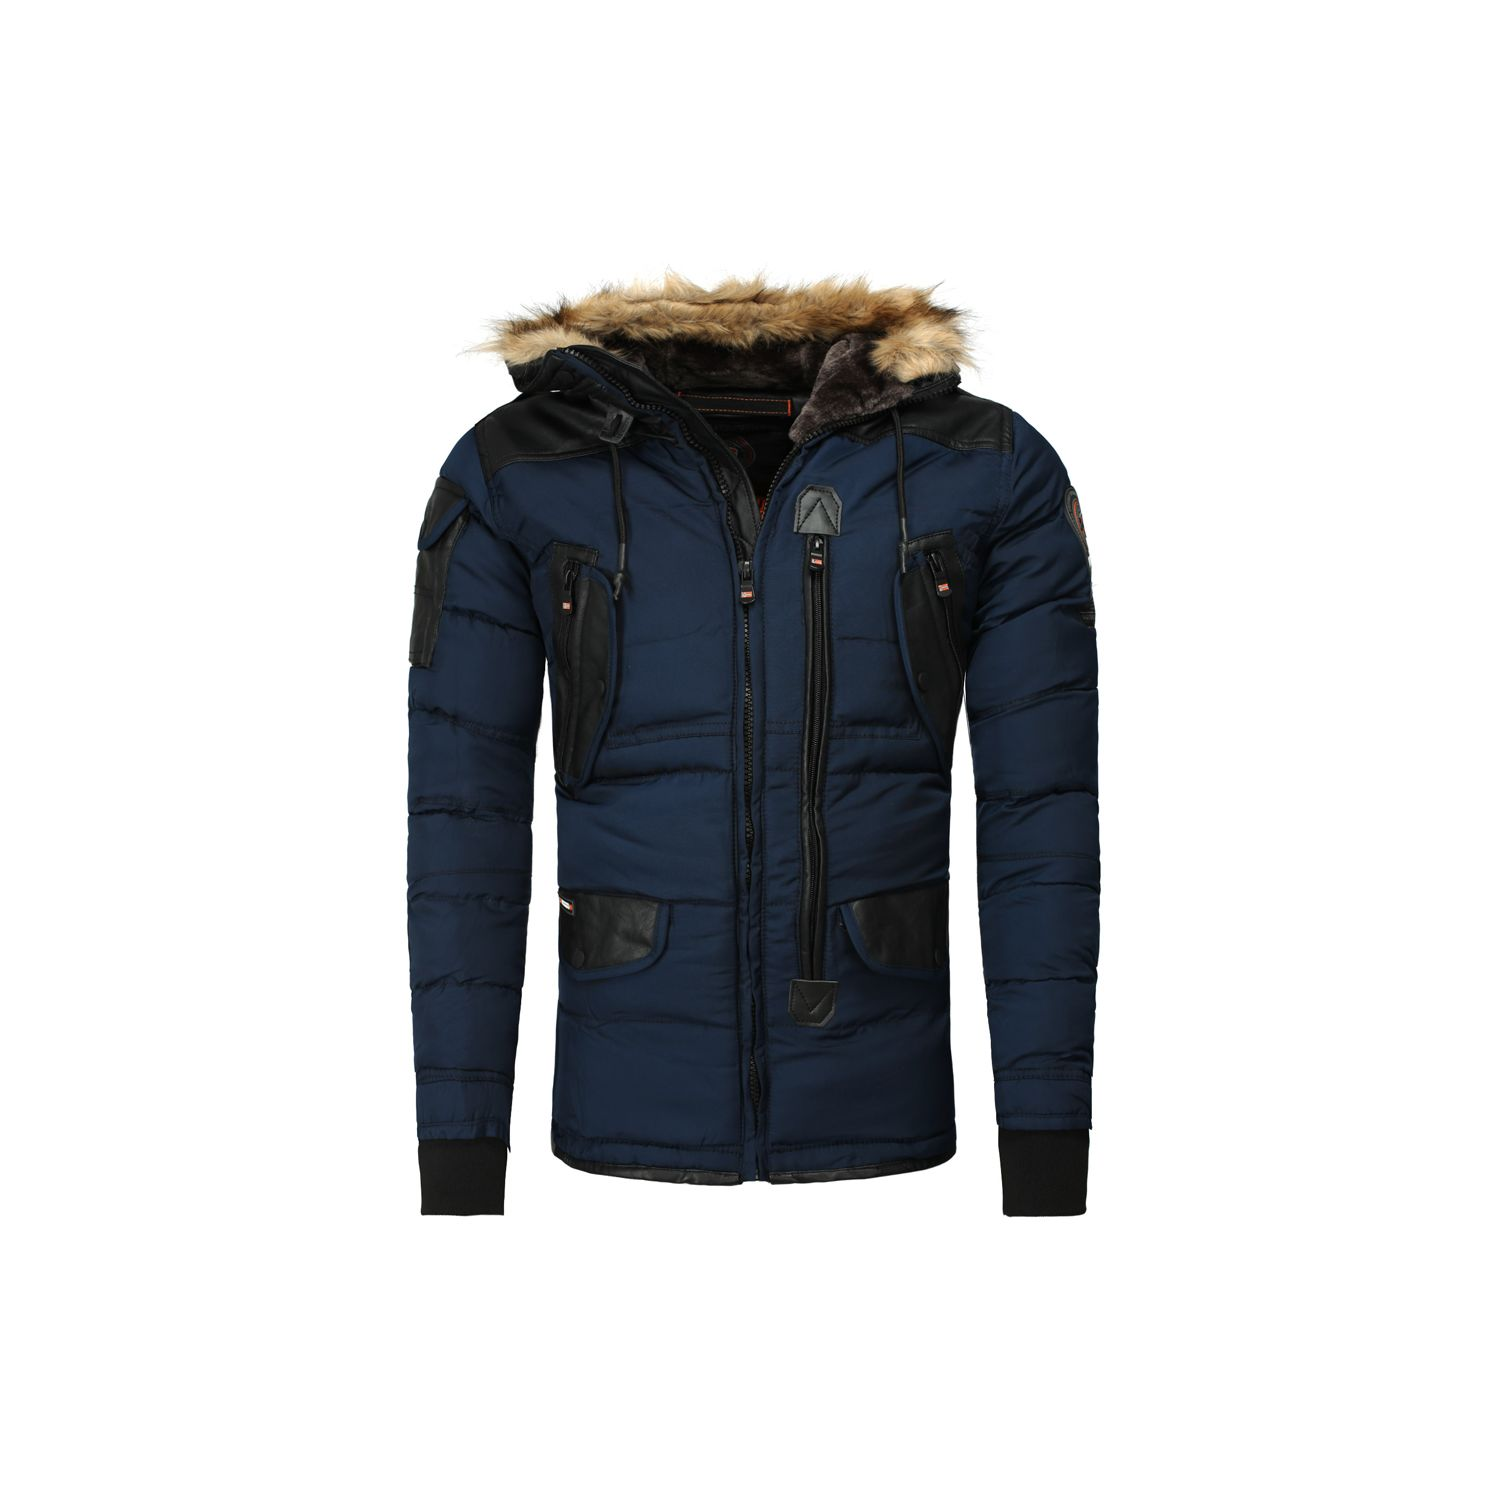 GEOGRAPHICAL NORWAY- Parka hiver Parka Buckle bleu marine